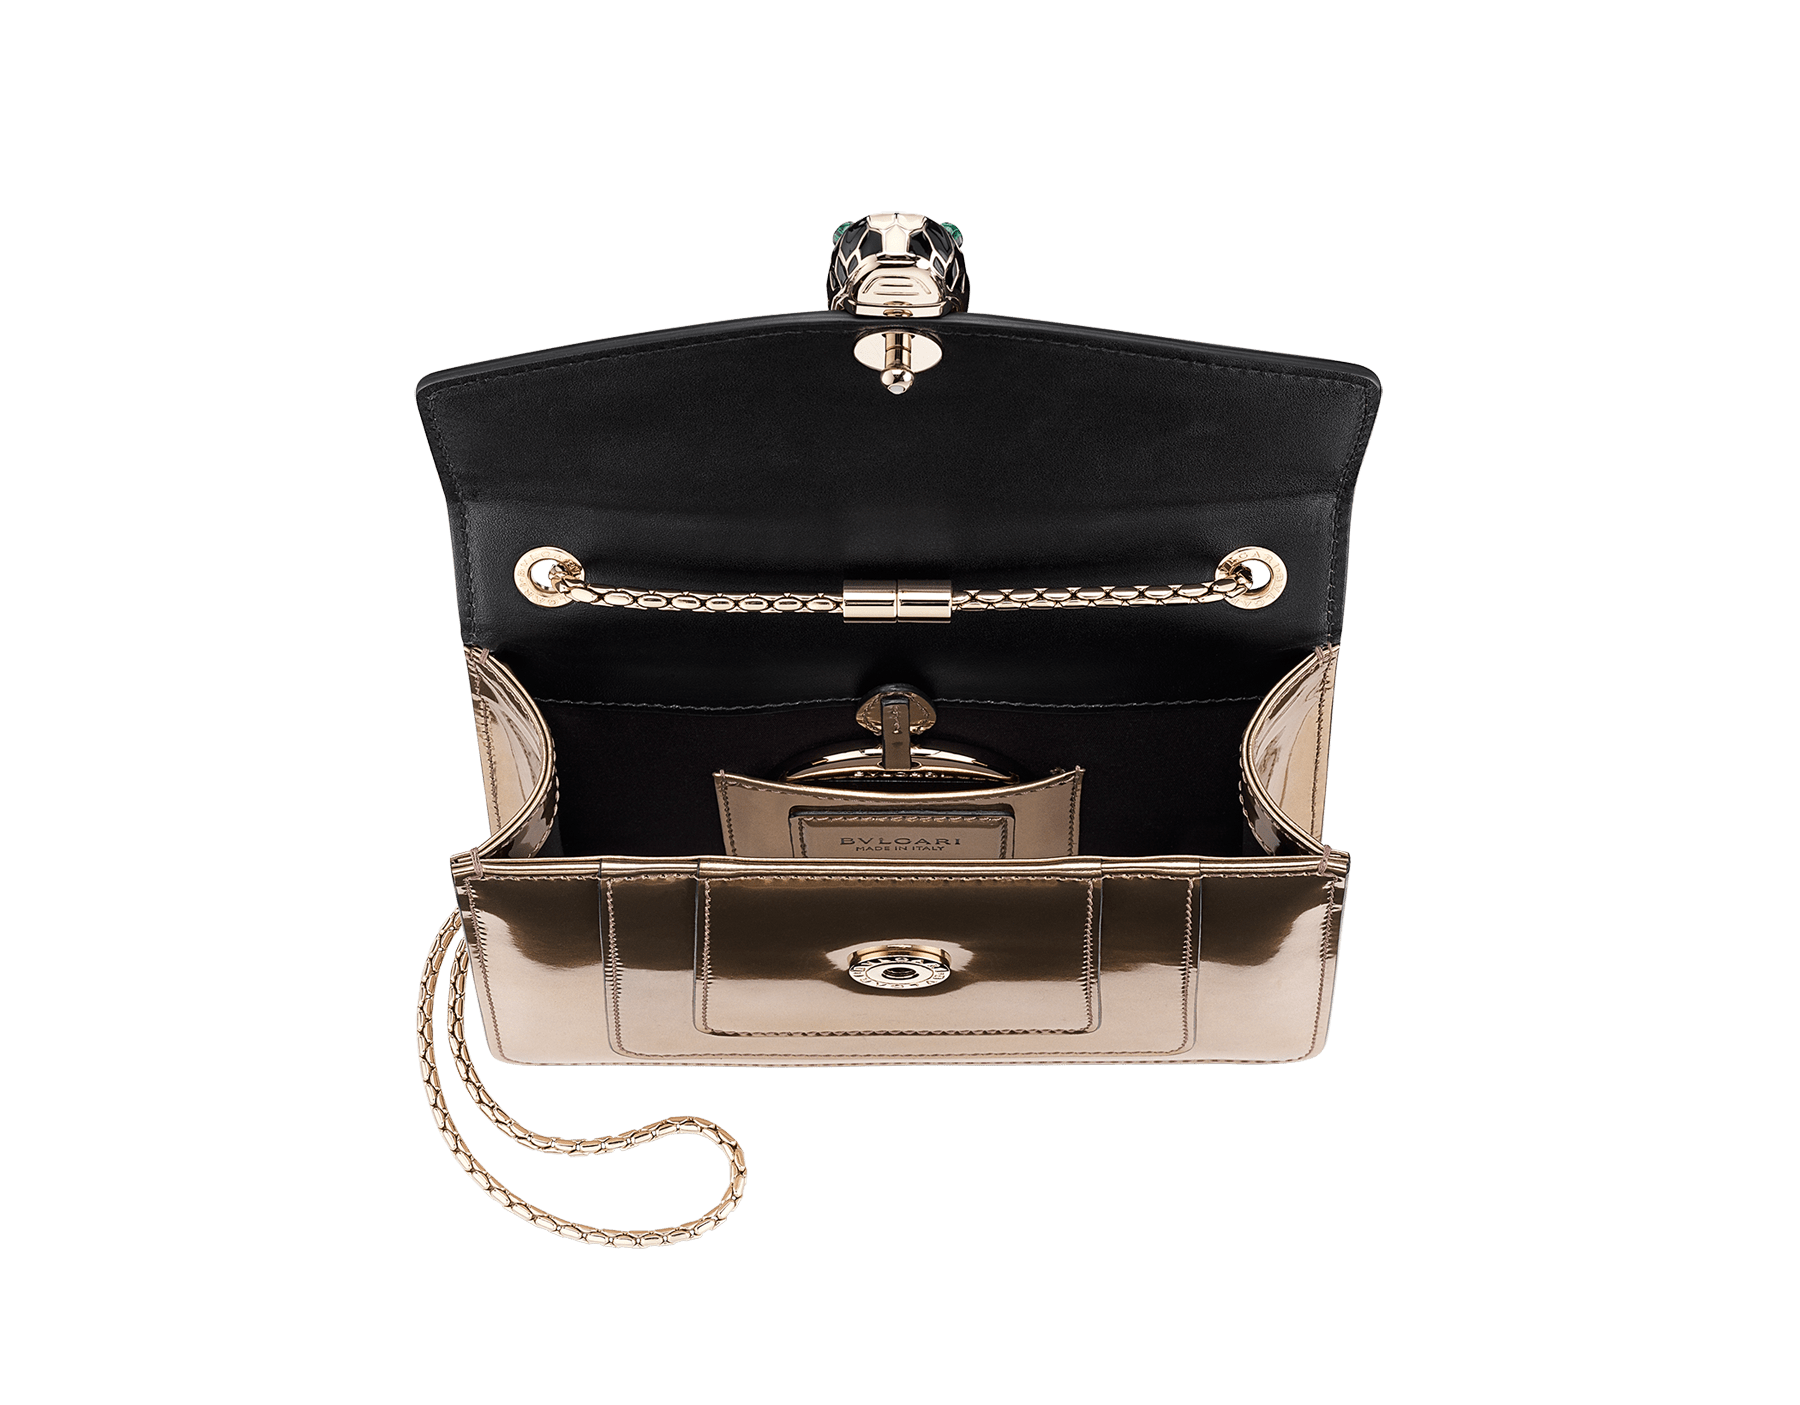 Flap cover bag Serpenti Forever in antique bronze brushed metallic calf leather with brass light gold plated Serpenti head closure in black and white enamel with eyes in green malachite. 39485 image 3